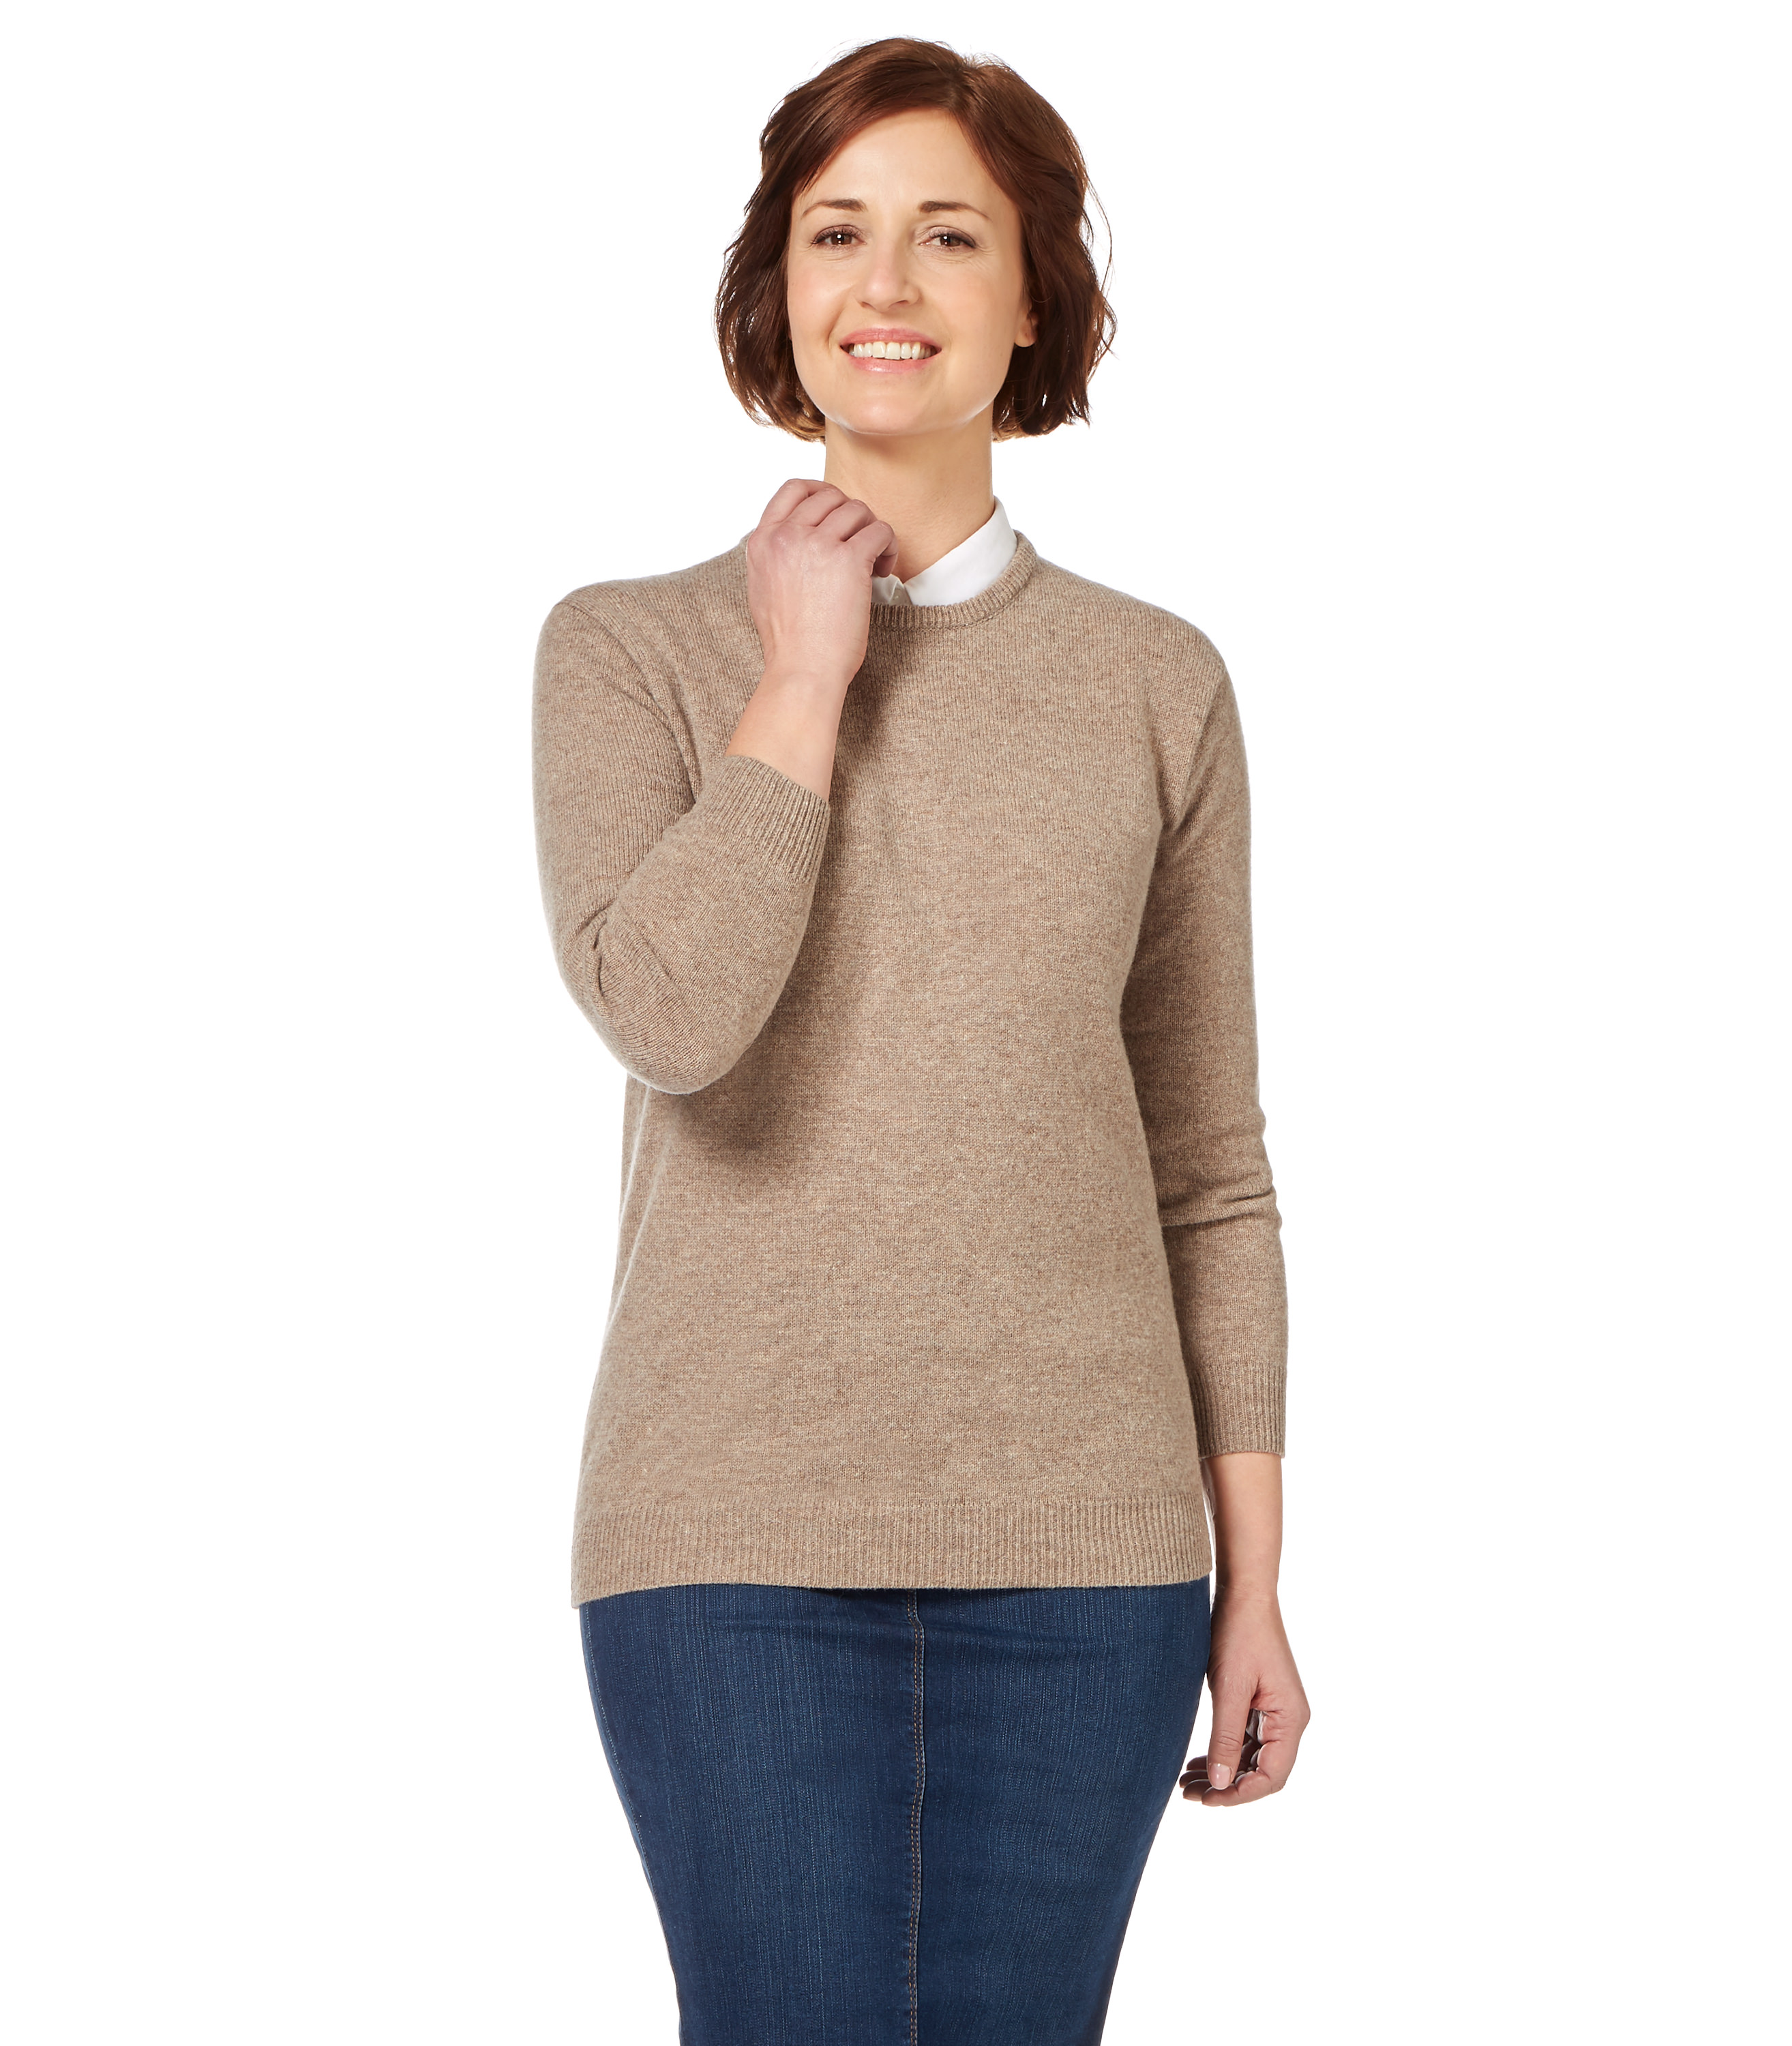 Shop women's sweaters at Eddie Bauer. % Satisfaction guaranteed. Since